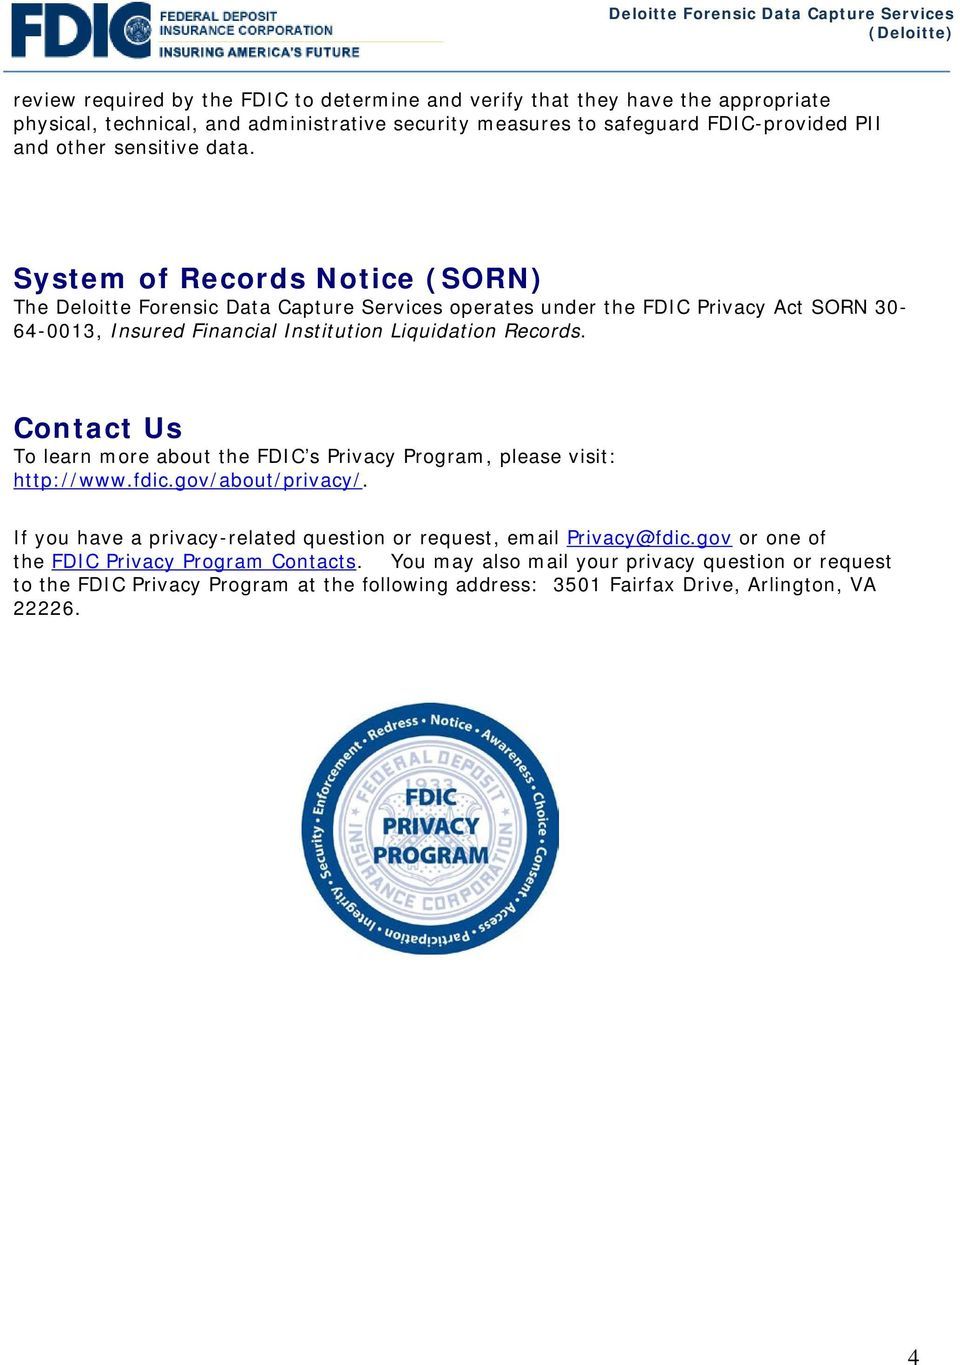 System of Records Notice (SORN) The Deloitte Forensic Data Capture Services operates under the FDIC Privacy Act SORN 30-64-0013, Insured Financial Institution Liquidation Records.